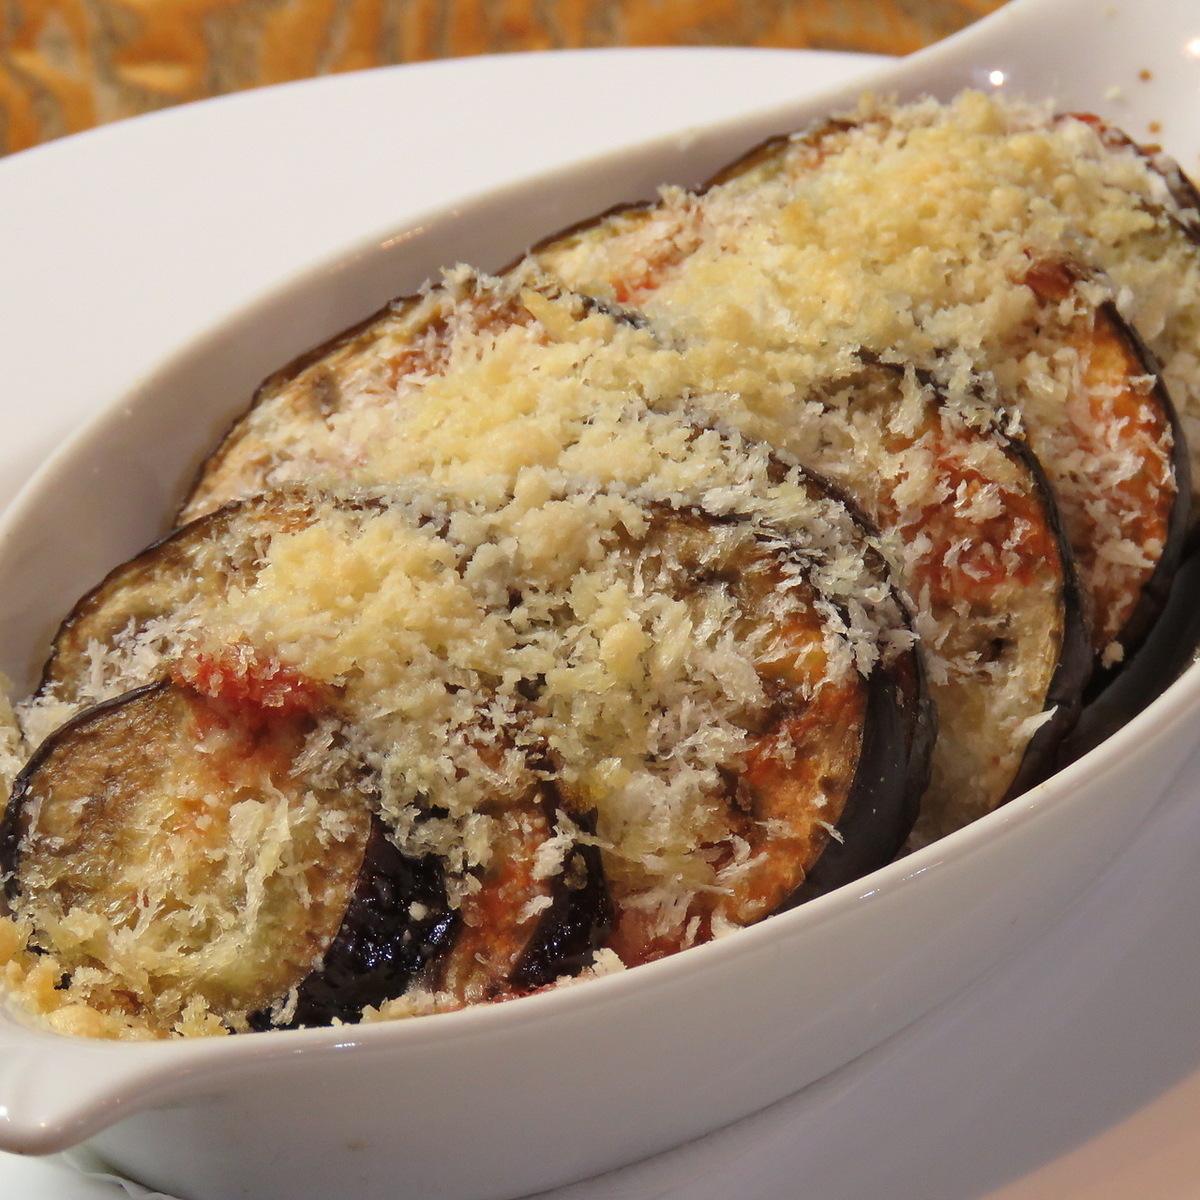 Eggplant with red wine and potato meat sauce gratin